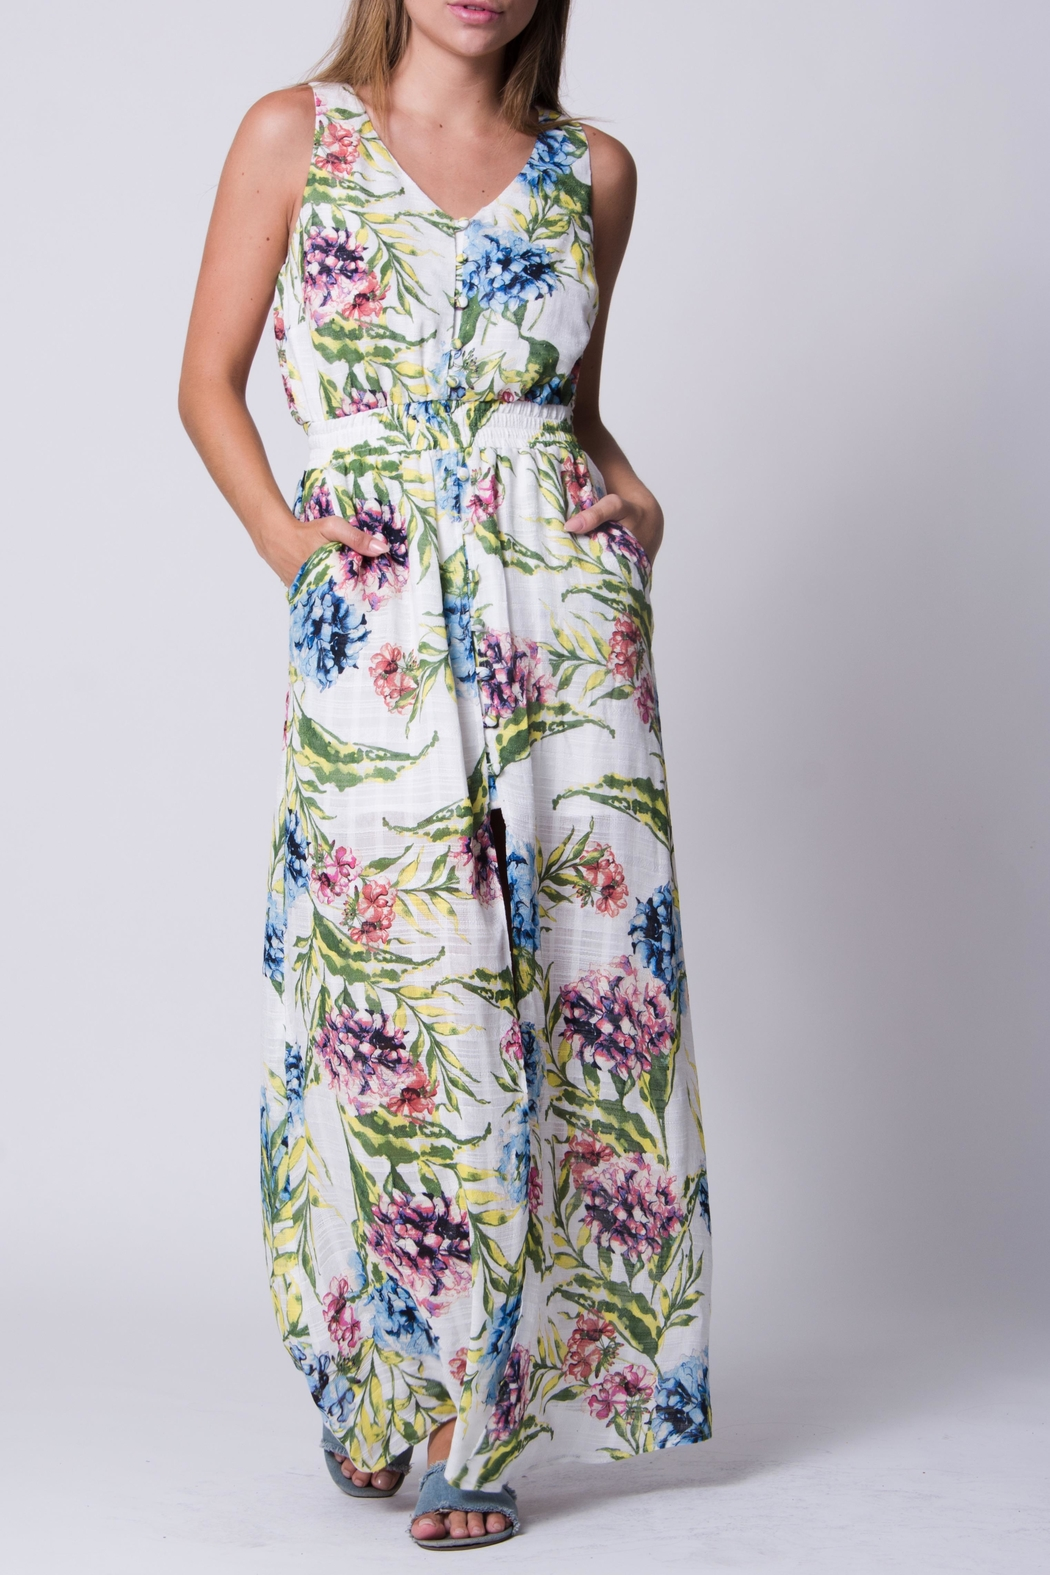 Wanderlux White Floral Maxi - Main Image